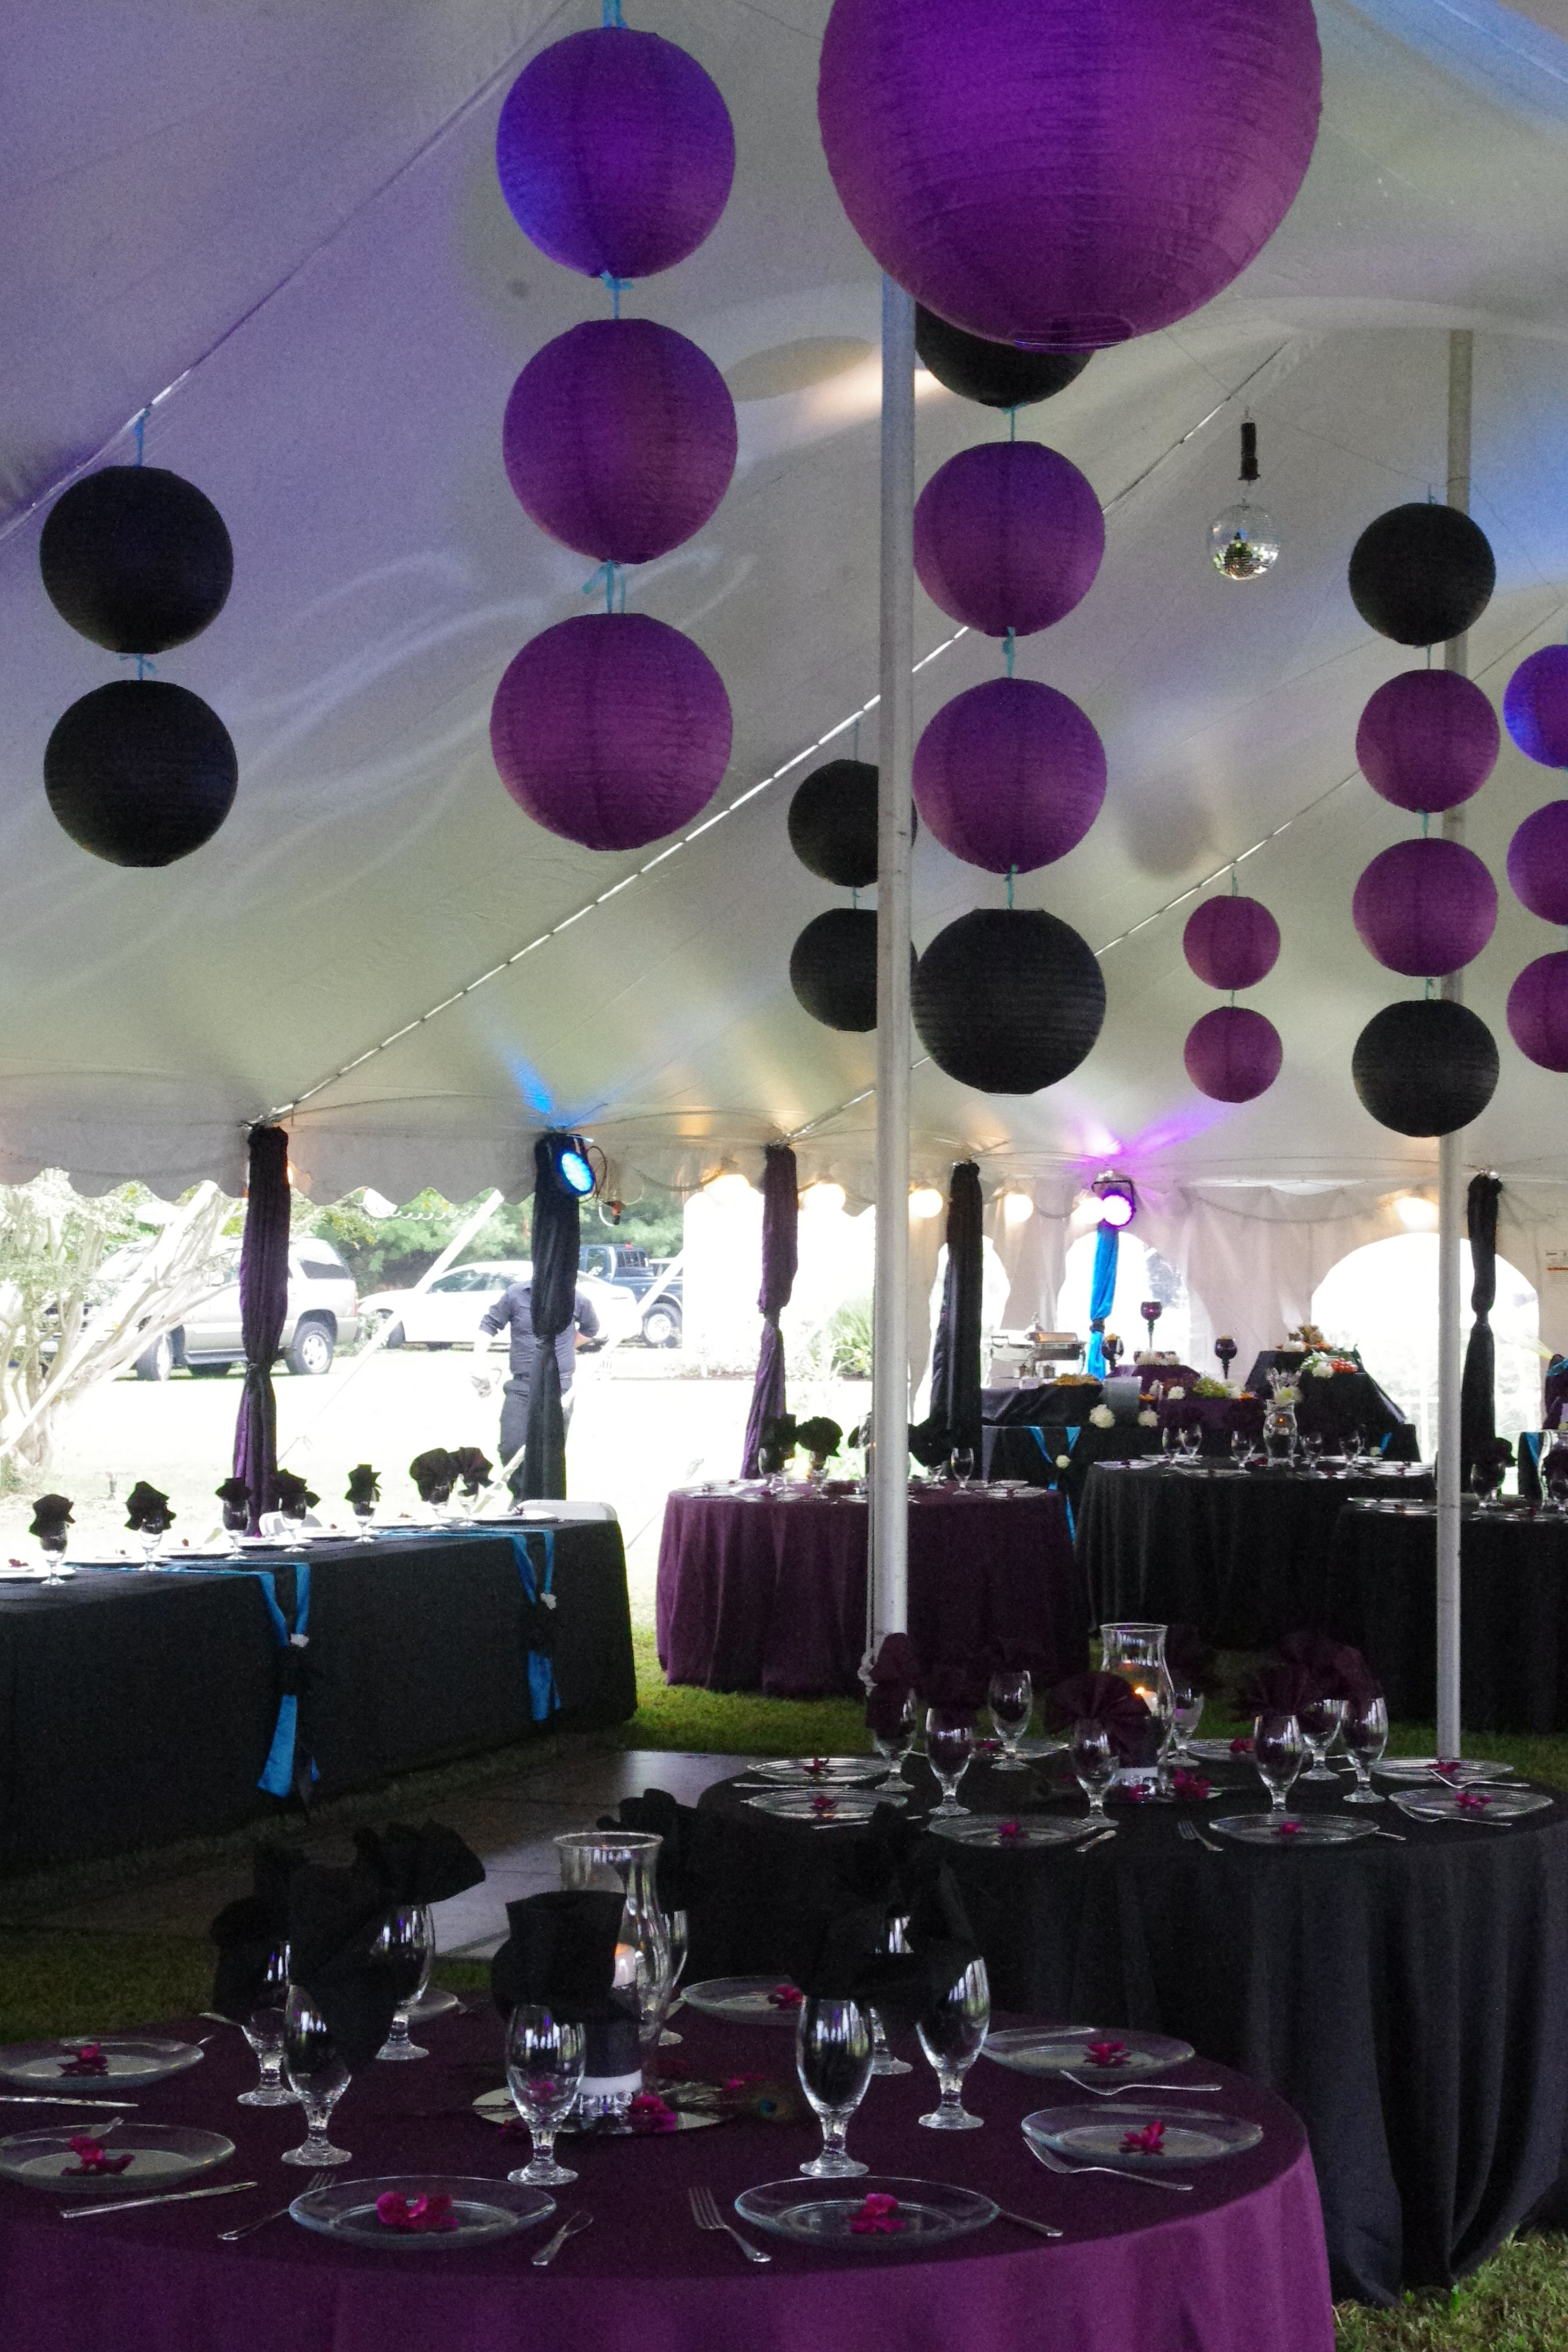 Cute purple and black lanterns used as party decor ...